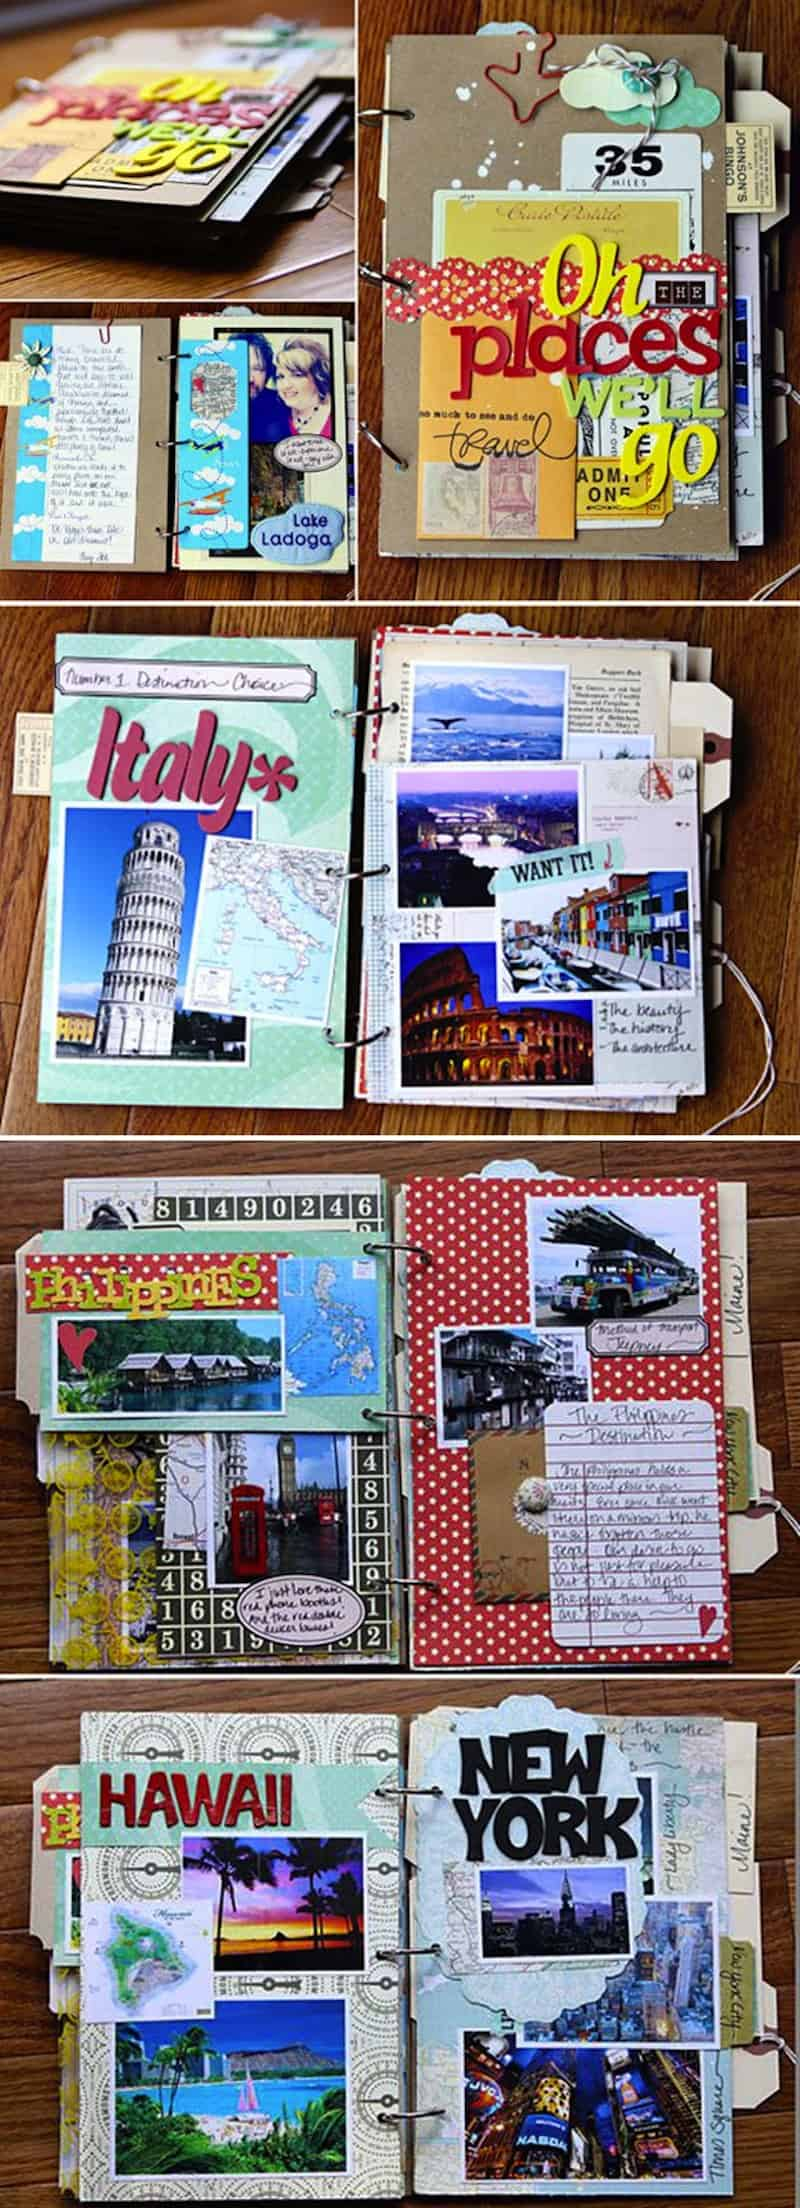 Travel trinket binder